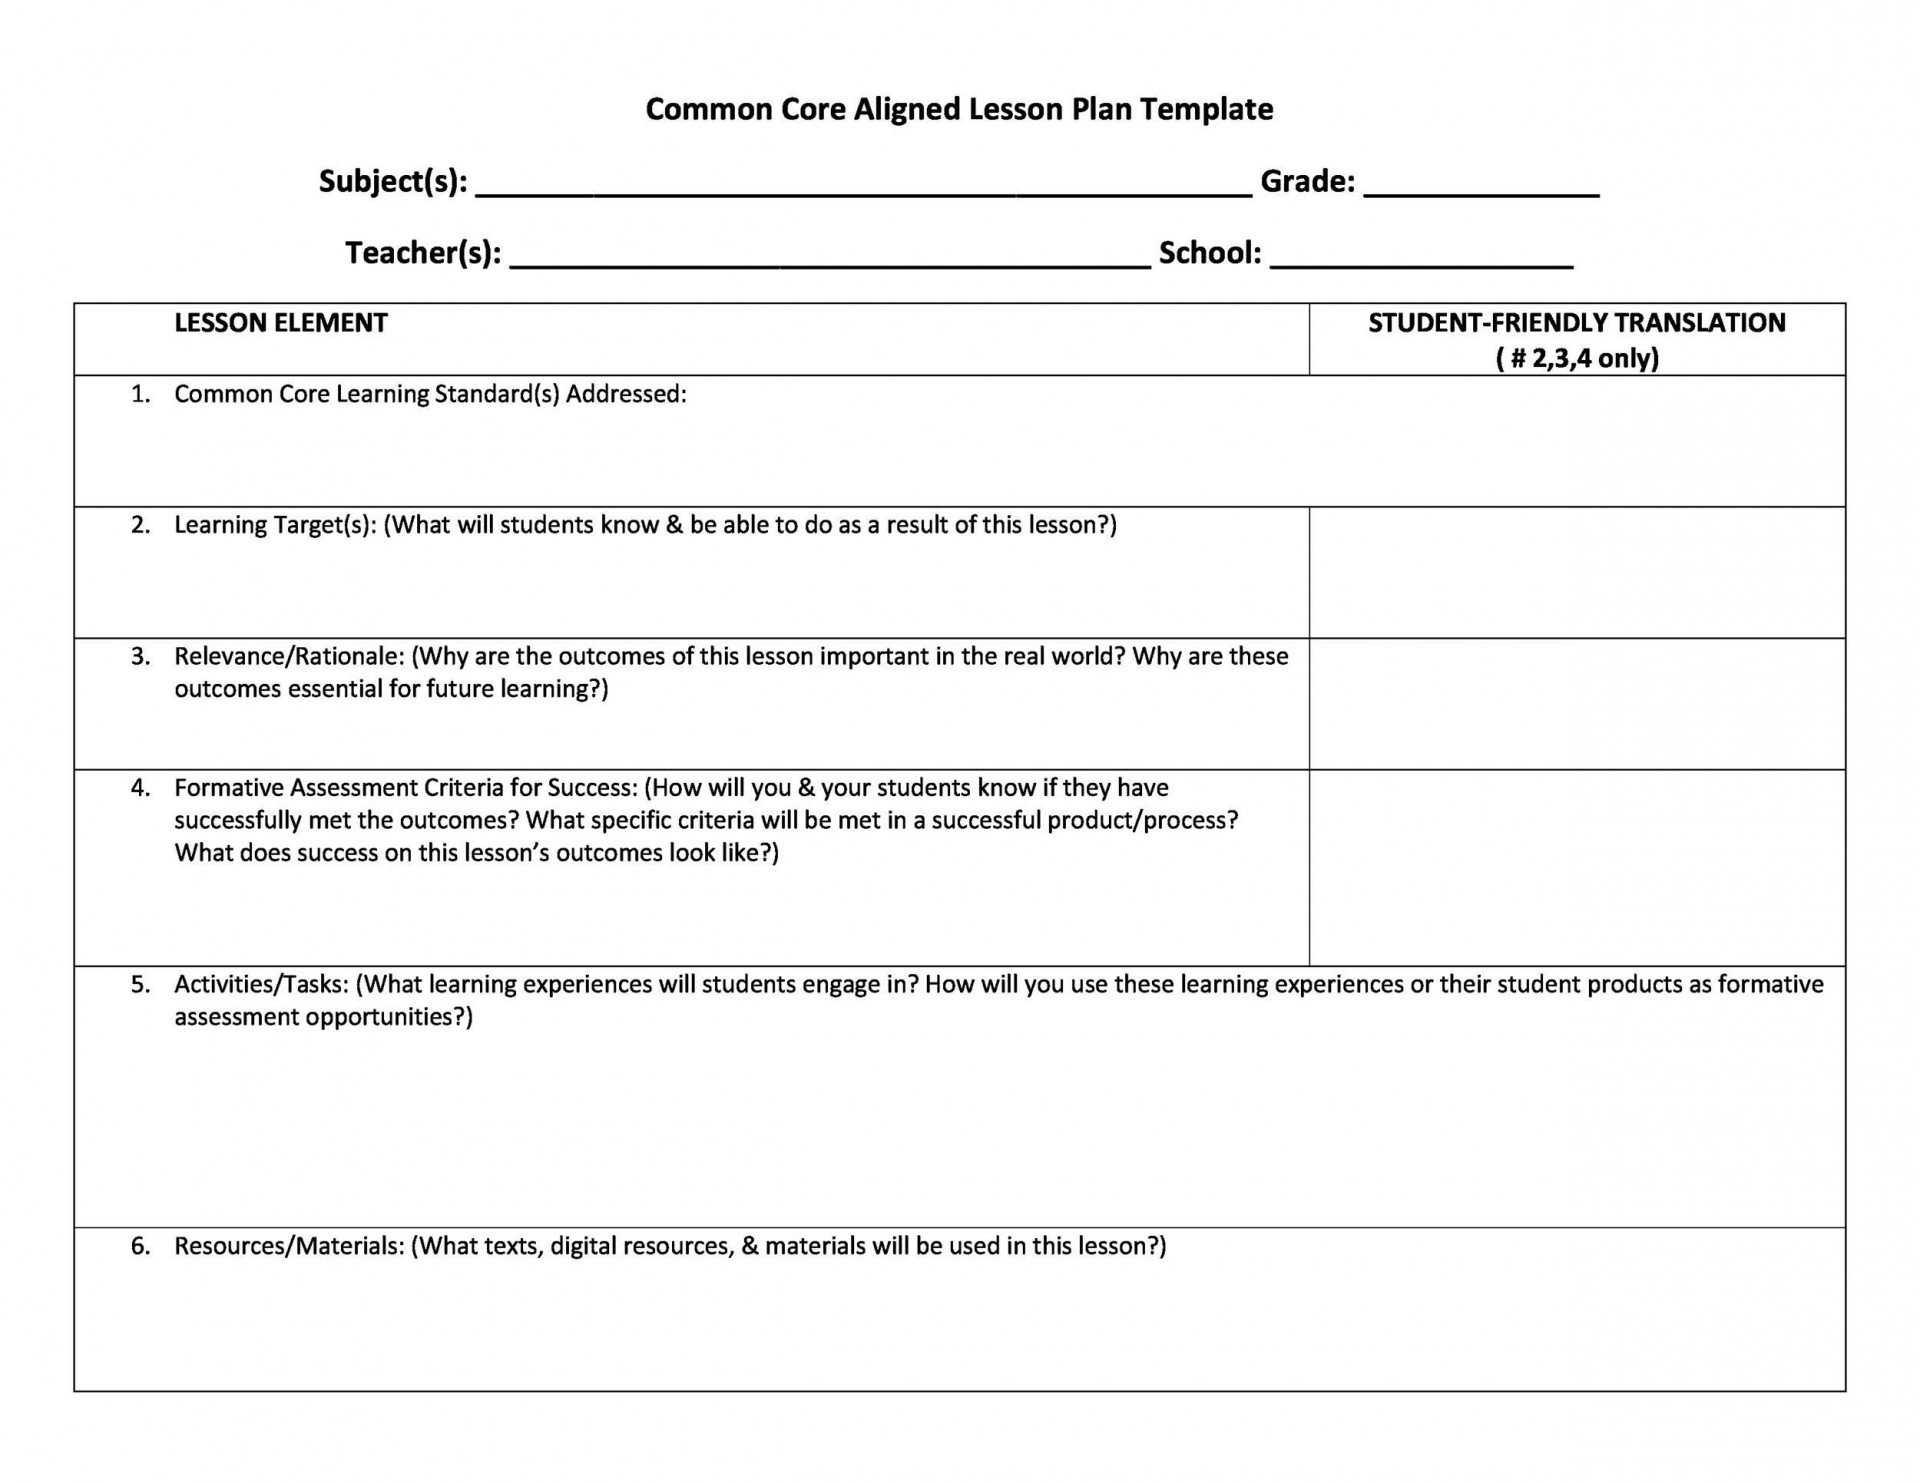 007 Amazing Kindergarten Lesson Plan Template With Common Core Standard Picture  Sample Using1920